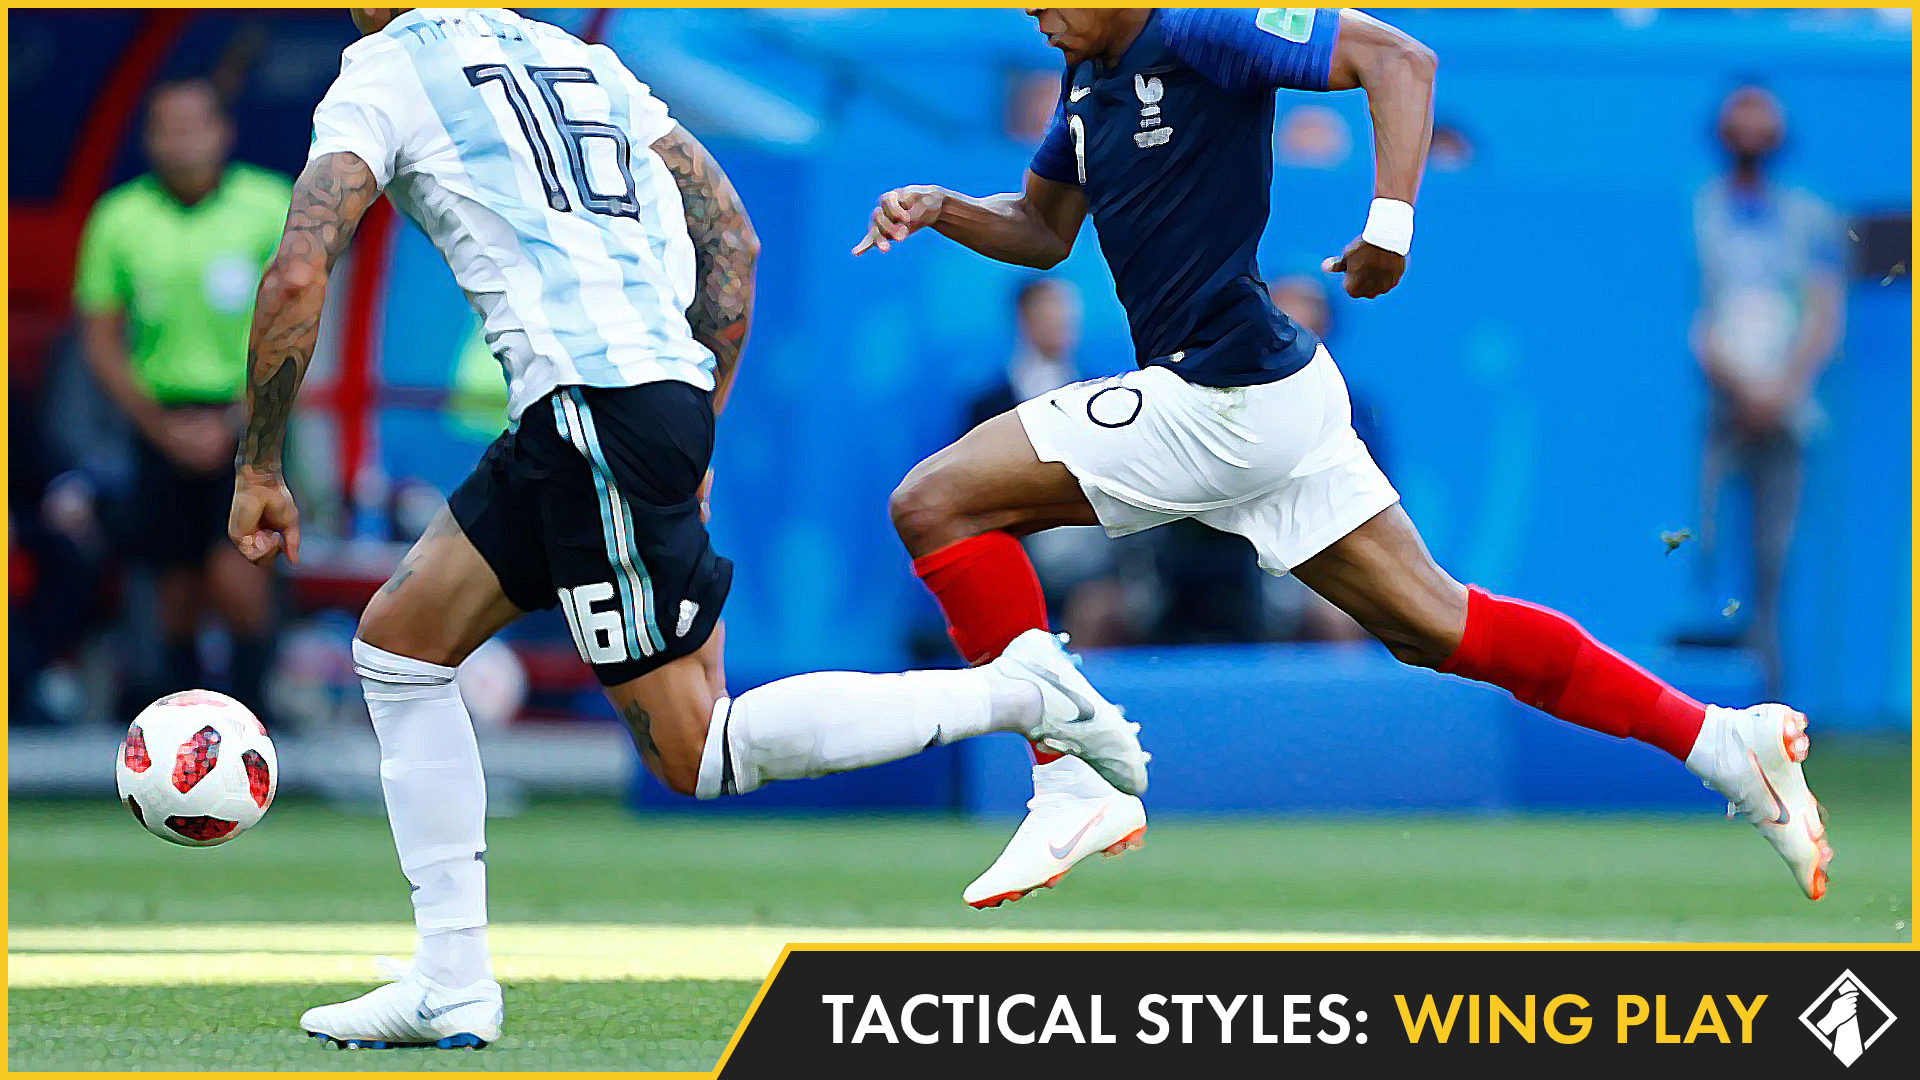 """FM21 - Tactical Styles: Wing Play"" feature image"